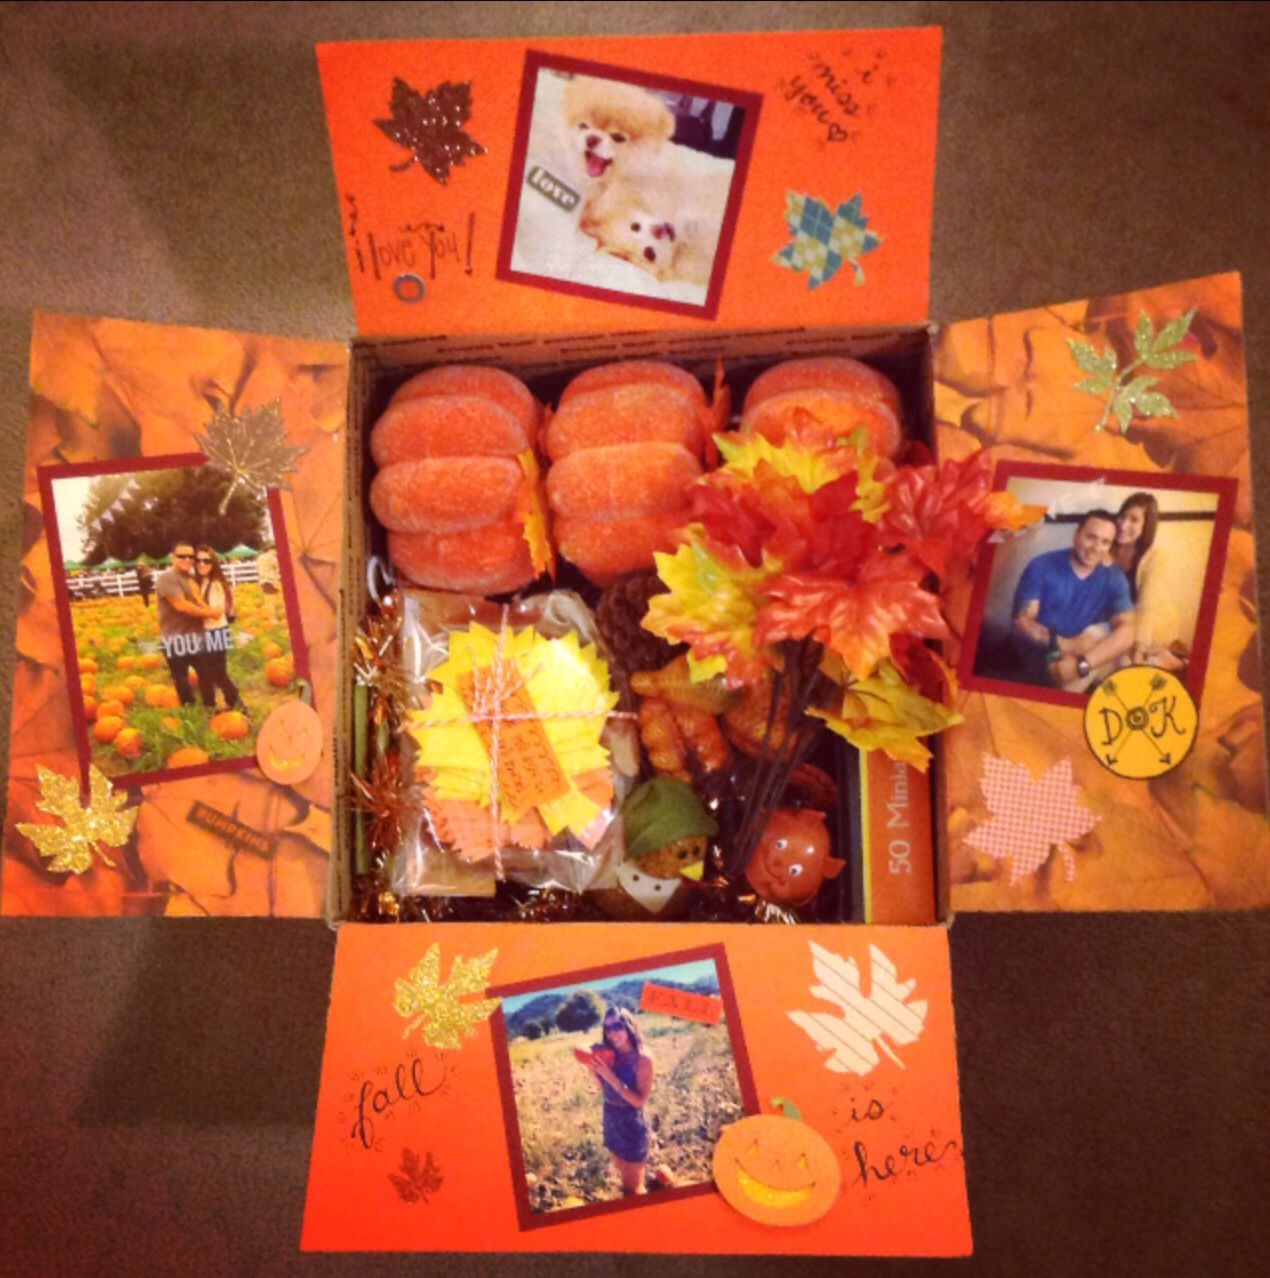 Fall Decorations care package. Inside: ALL 99 cent store items. 3 pumpkins, 2 shiny garlands of fall leaves, pkg of foam leaves & turkey's, bundle of pine cones, acorns & pumpkins, light up turkey, squirrel, box of mini orange lights, pkg of 8 thanksgiving cut outs for wall decor, orange bottom felt table cloth & 5 bundles of silk Fall leaves.